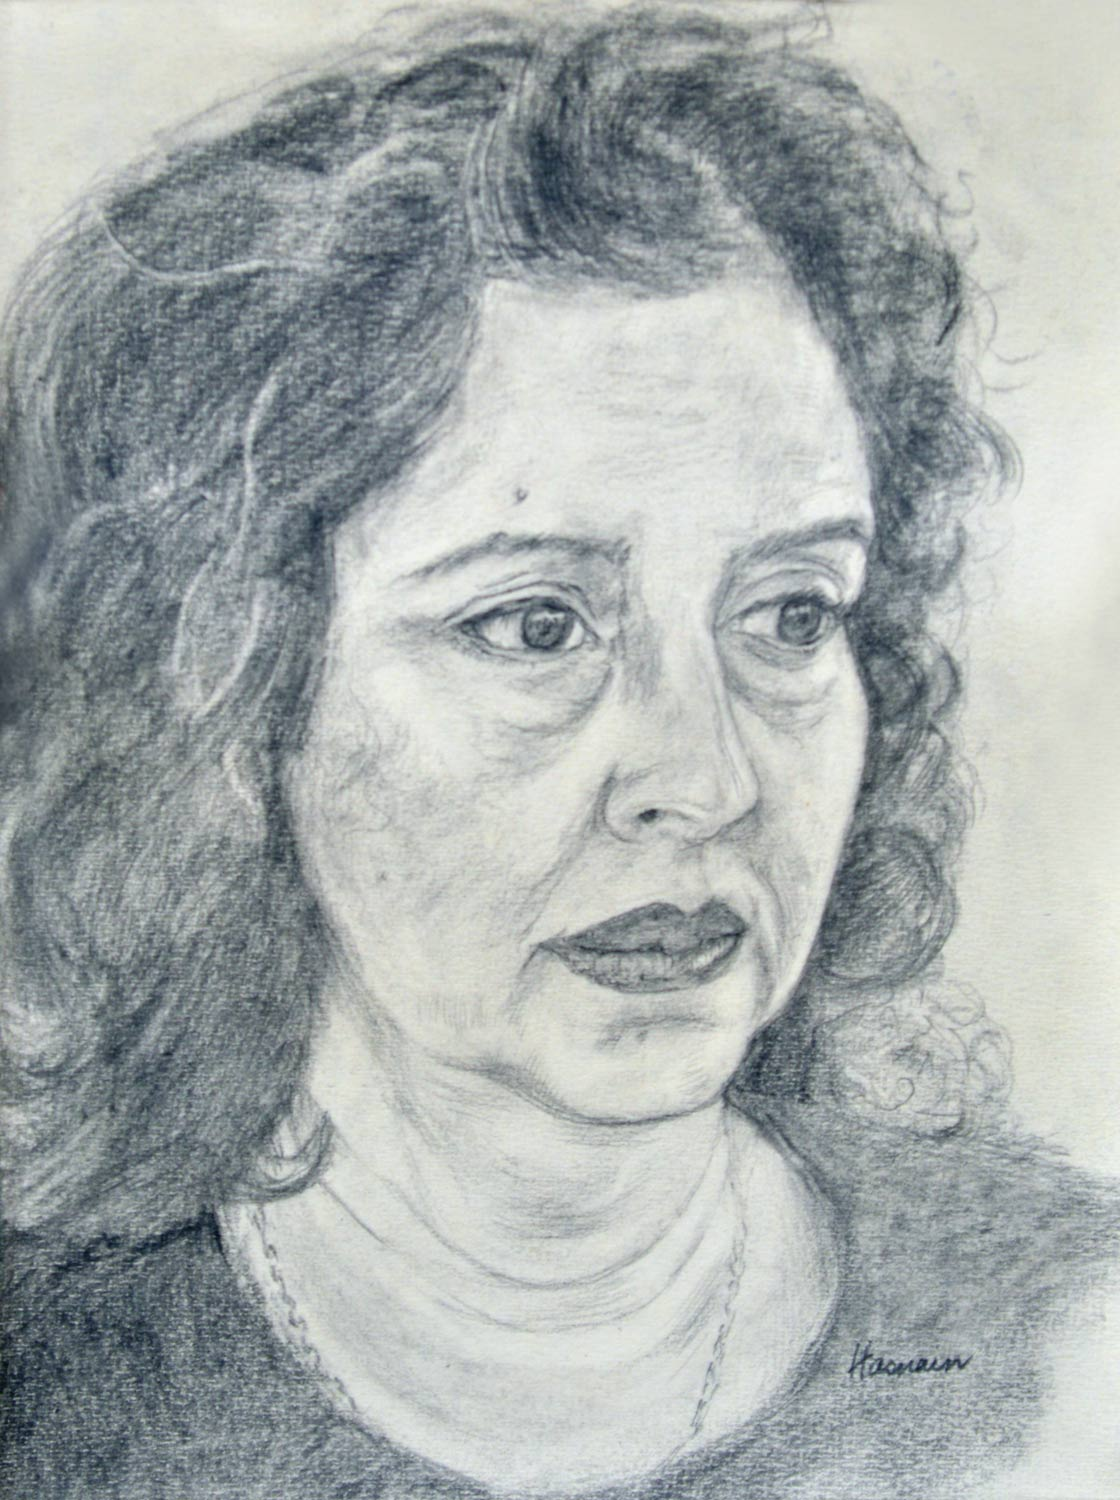 Self Portrait, 9X12 Inches, Graphite On Paper, 2012